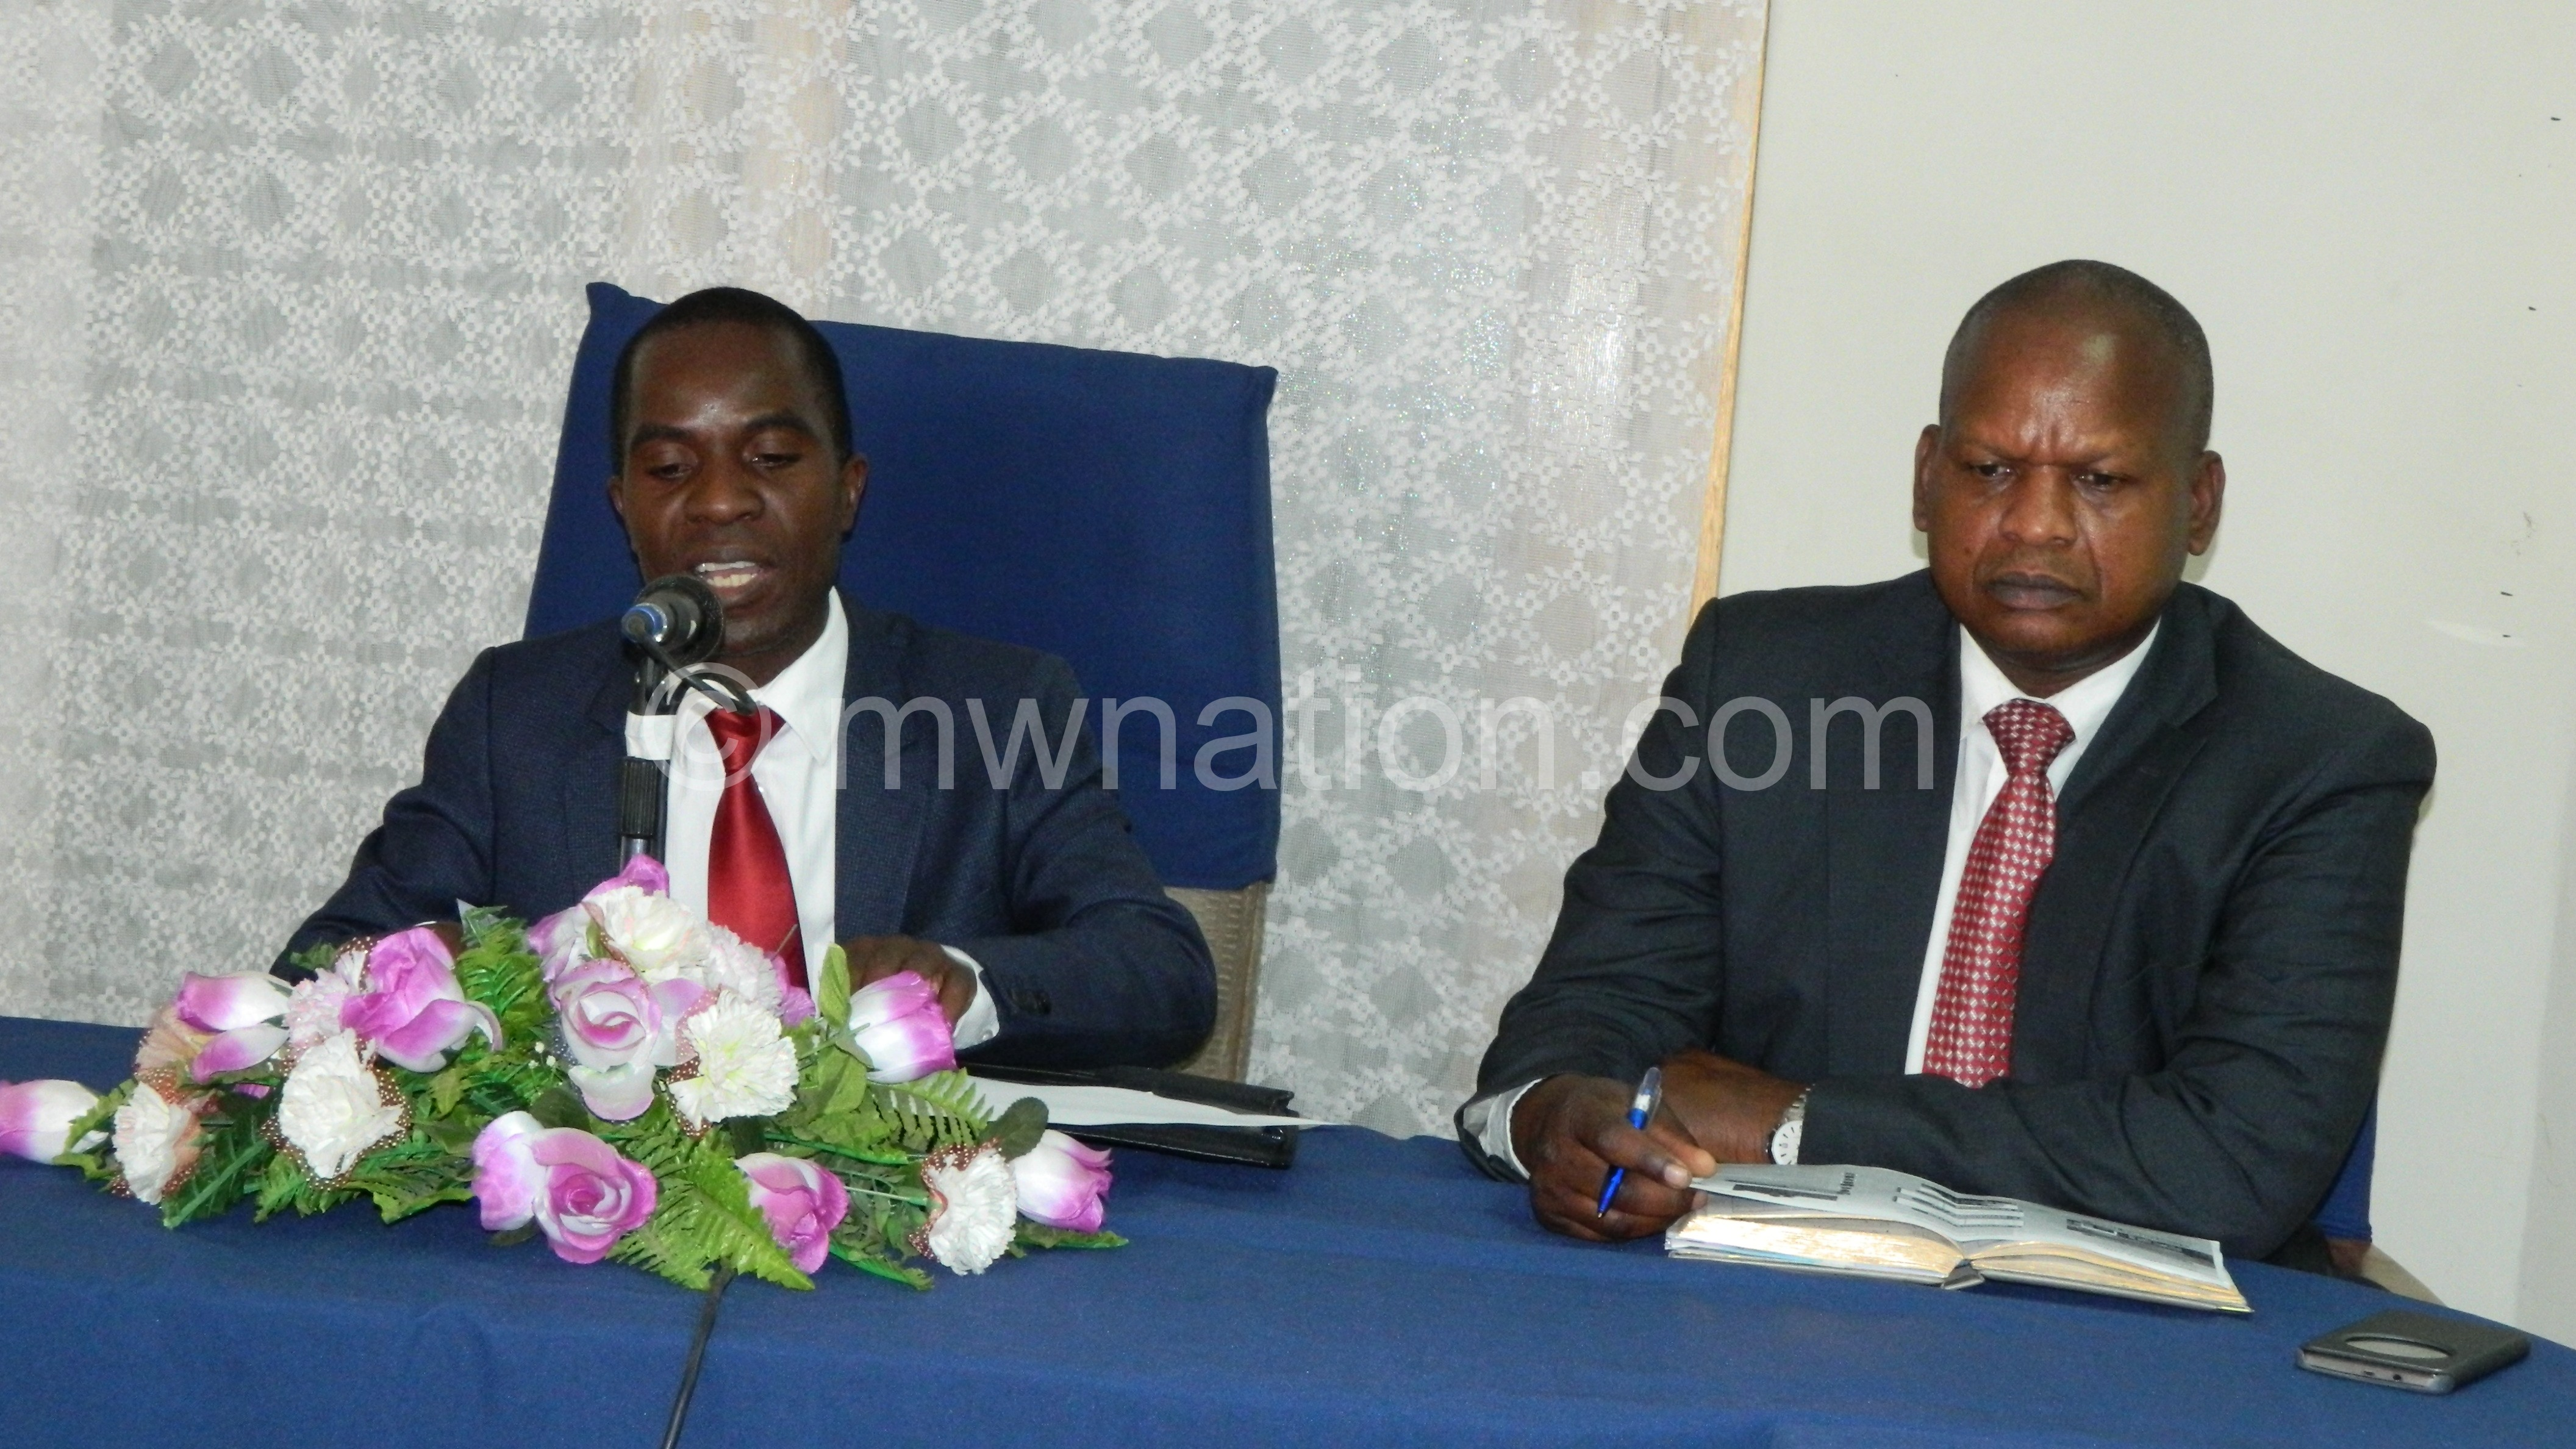 Chiunda left speaking during the media briefing while Mutala Phiri looks on | The Nation Online